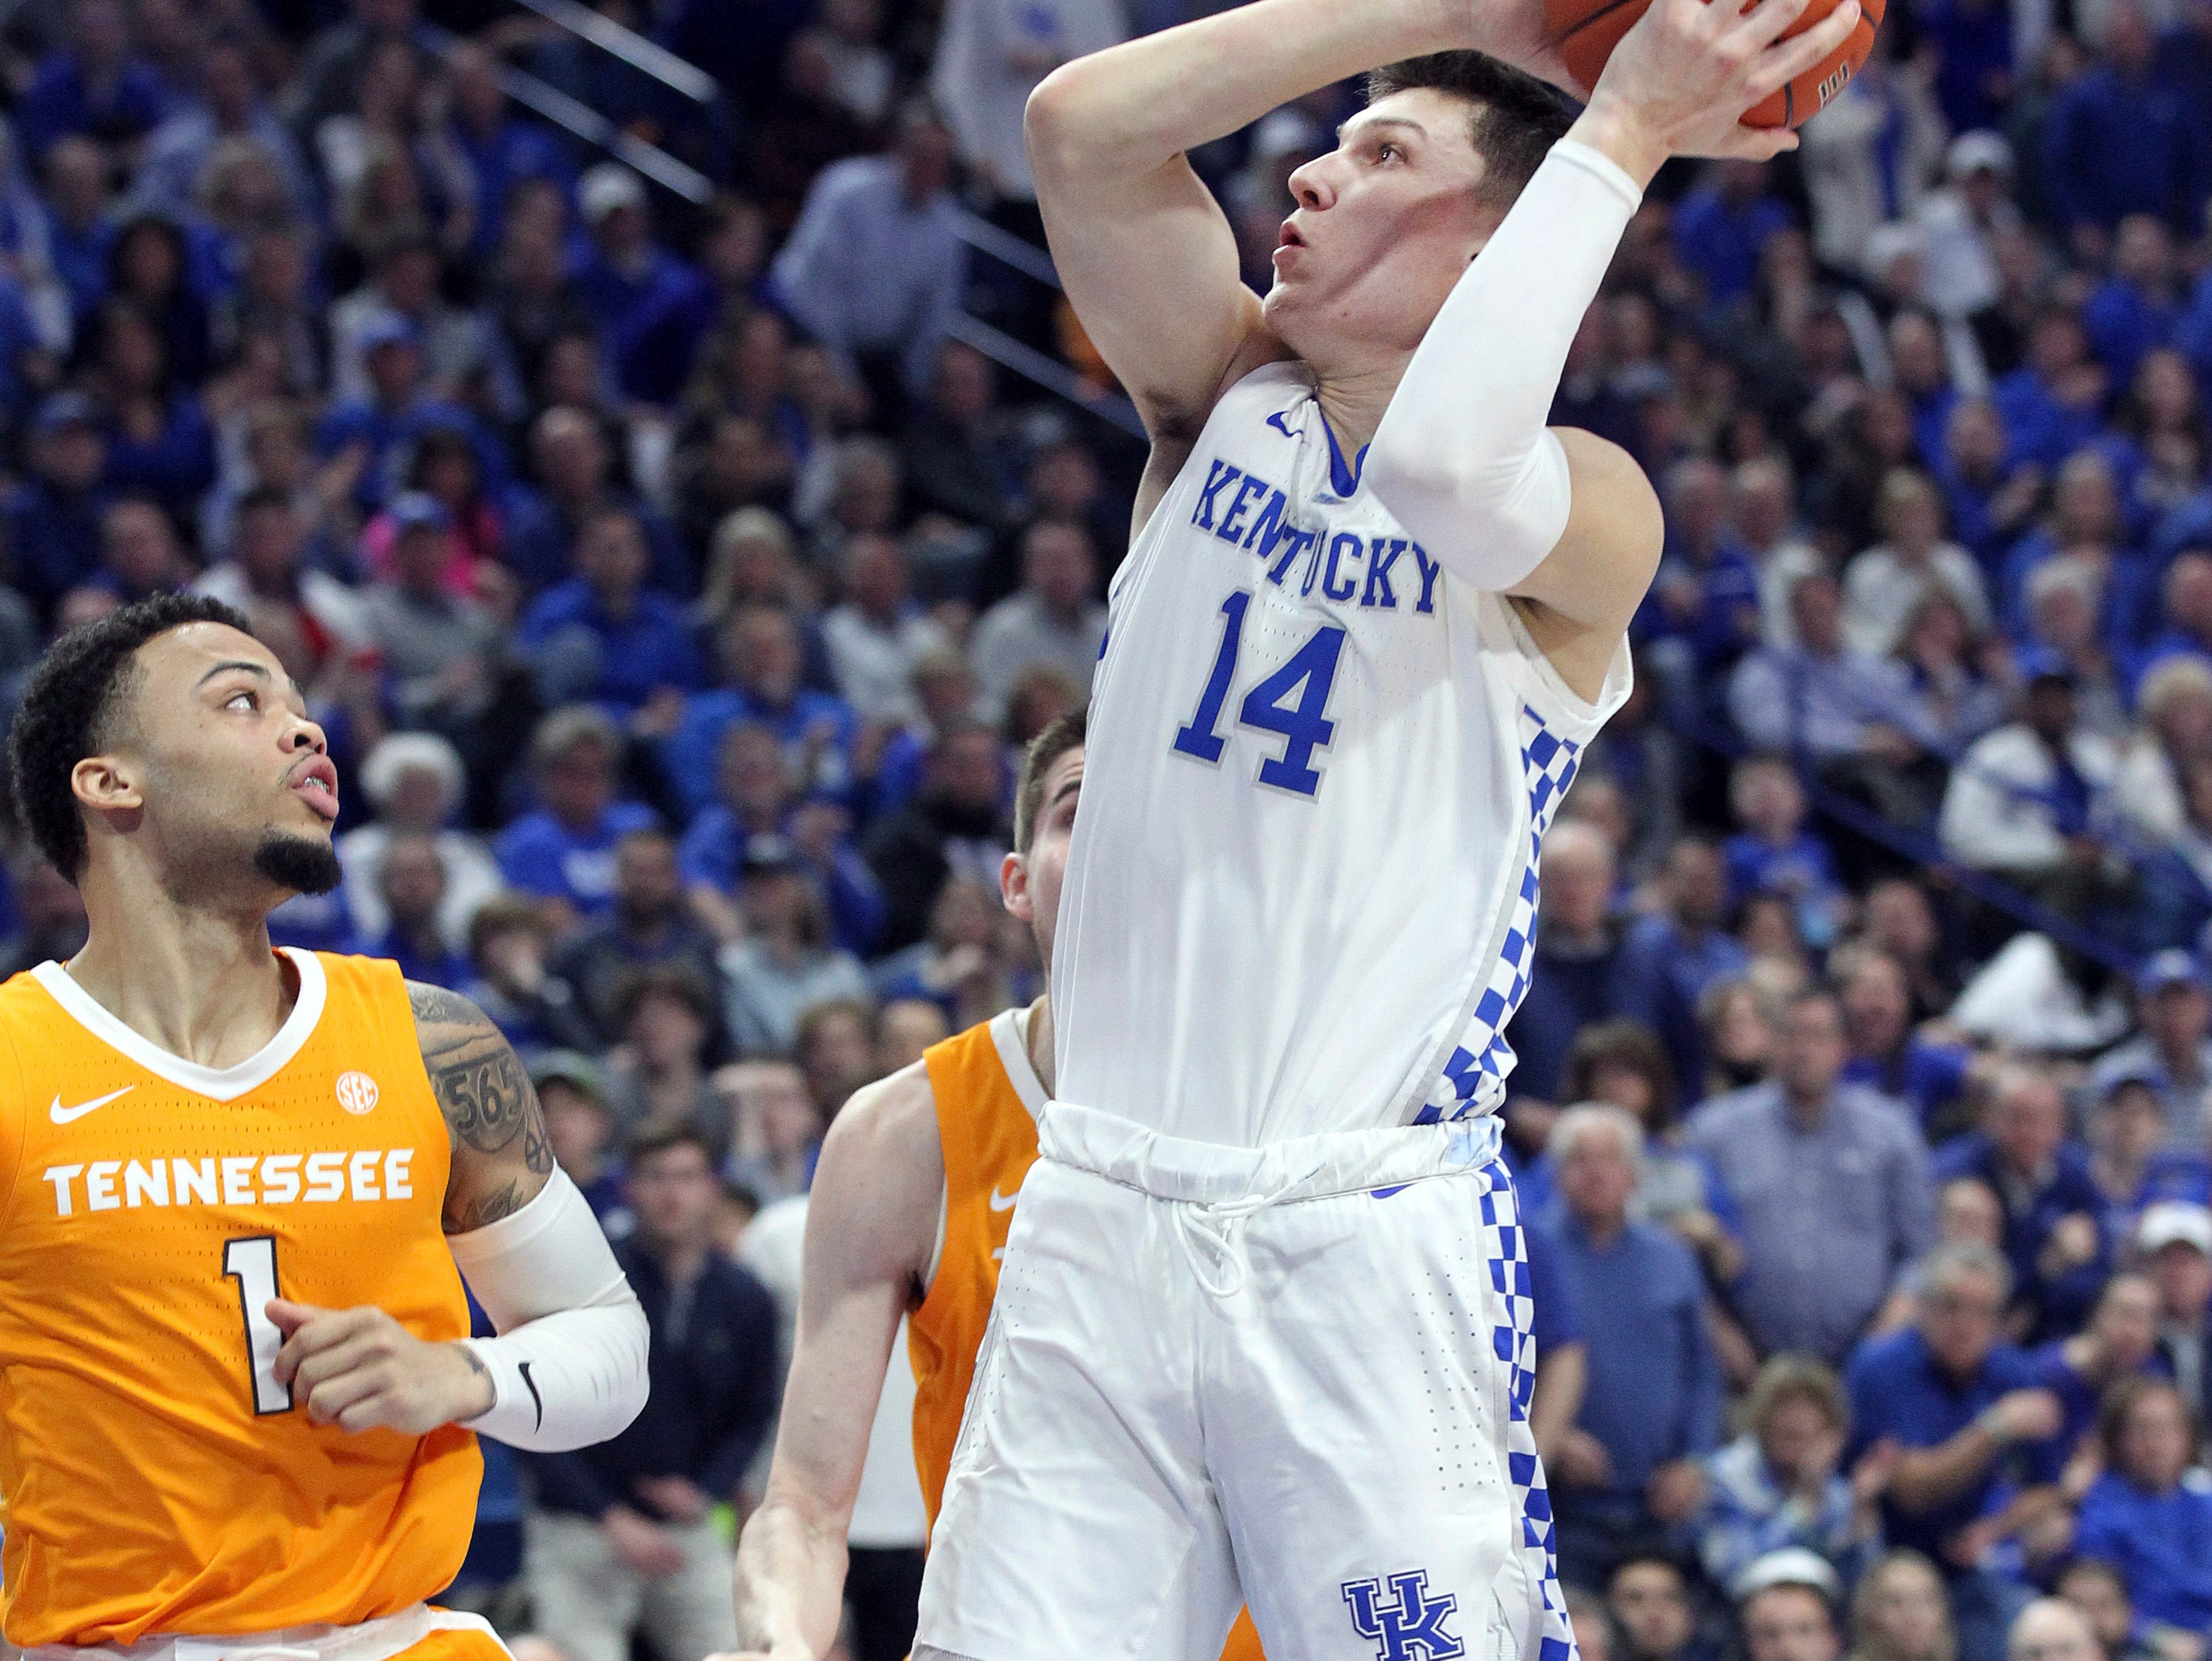 Kentucky's Tyler Herro (14) shoots near Tennessee's Lamonte Turner (1) during the first half of an NCAA college basketball game in Lexington, Ky., Saturday, Feb. 16, 2019. (AP Photo/James Crisp)